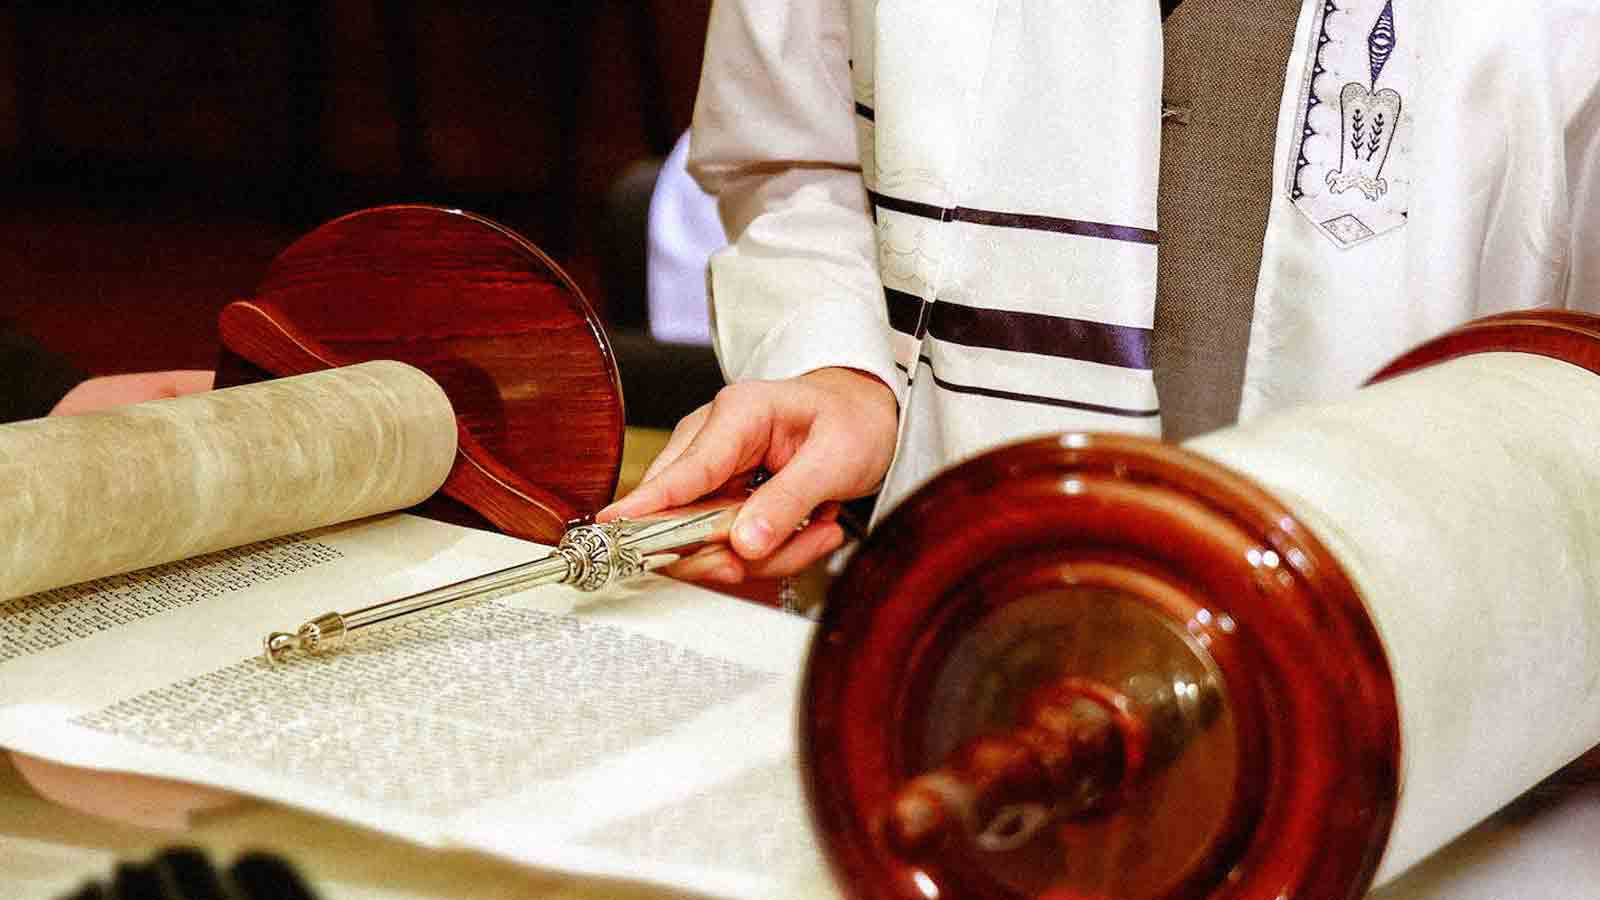 EXAMINE THE HISTORICITY OF SCRIPTURE